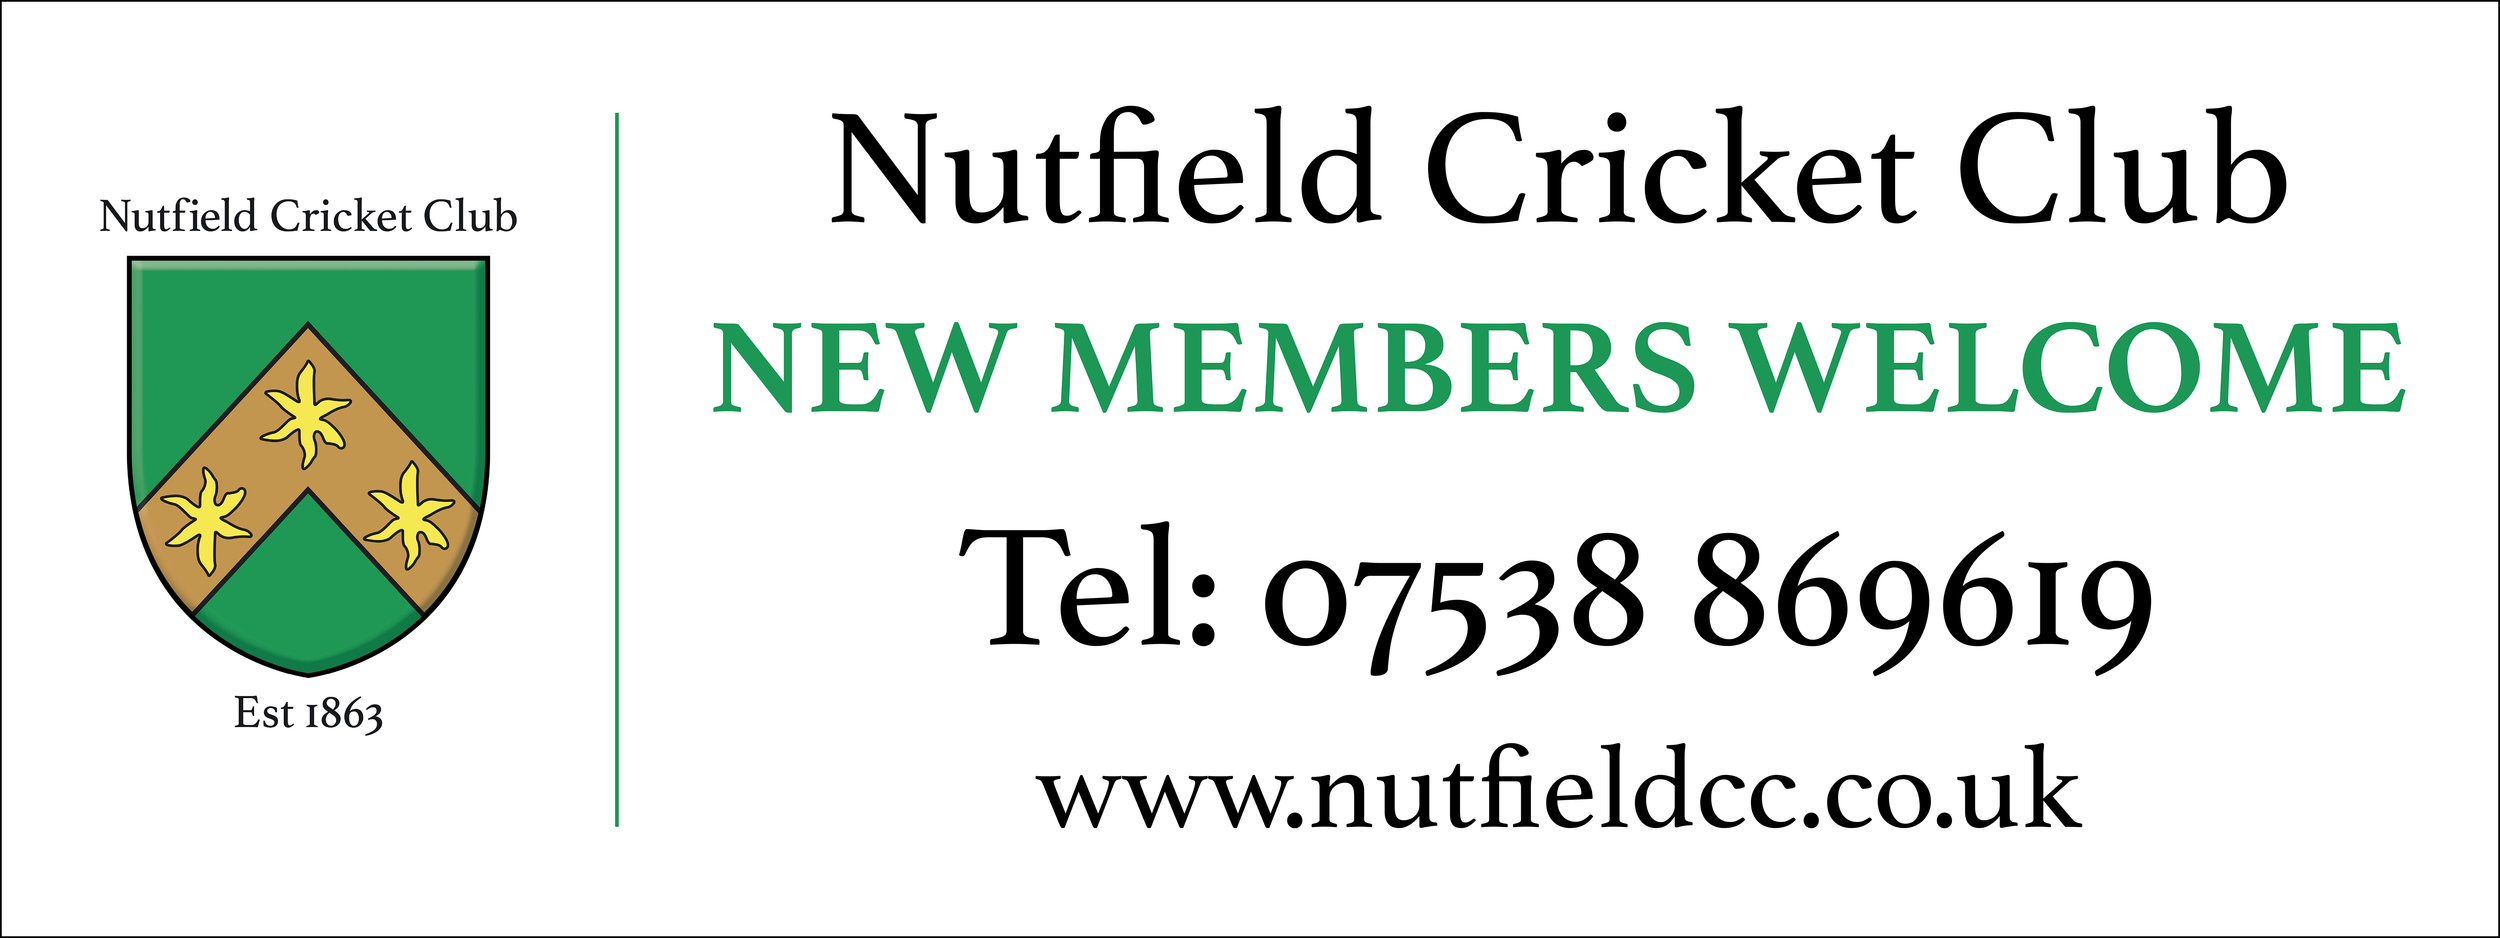 Nutfield Cricket Club Vinyl Banner